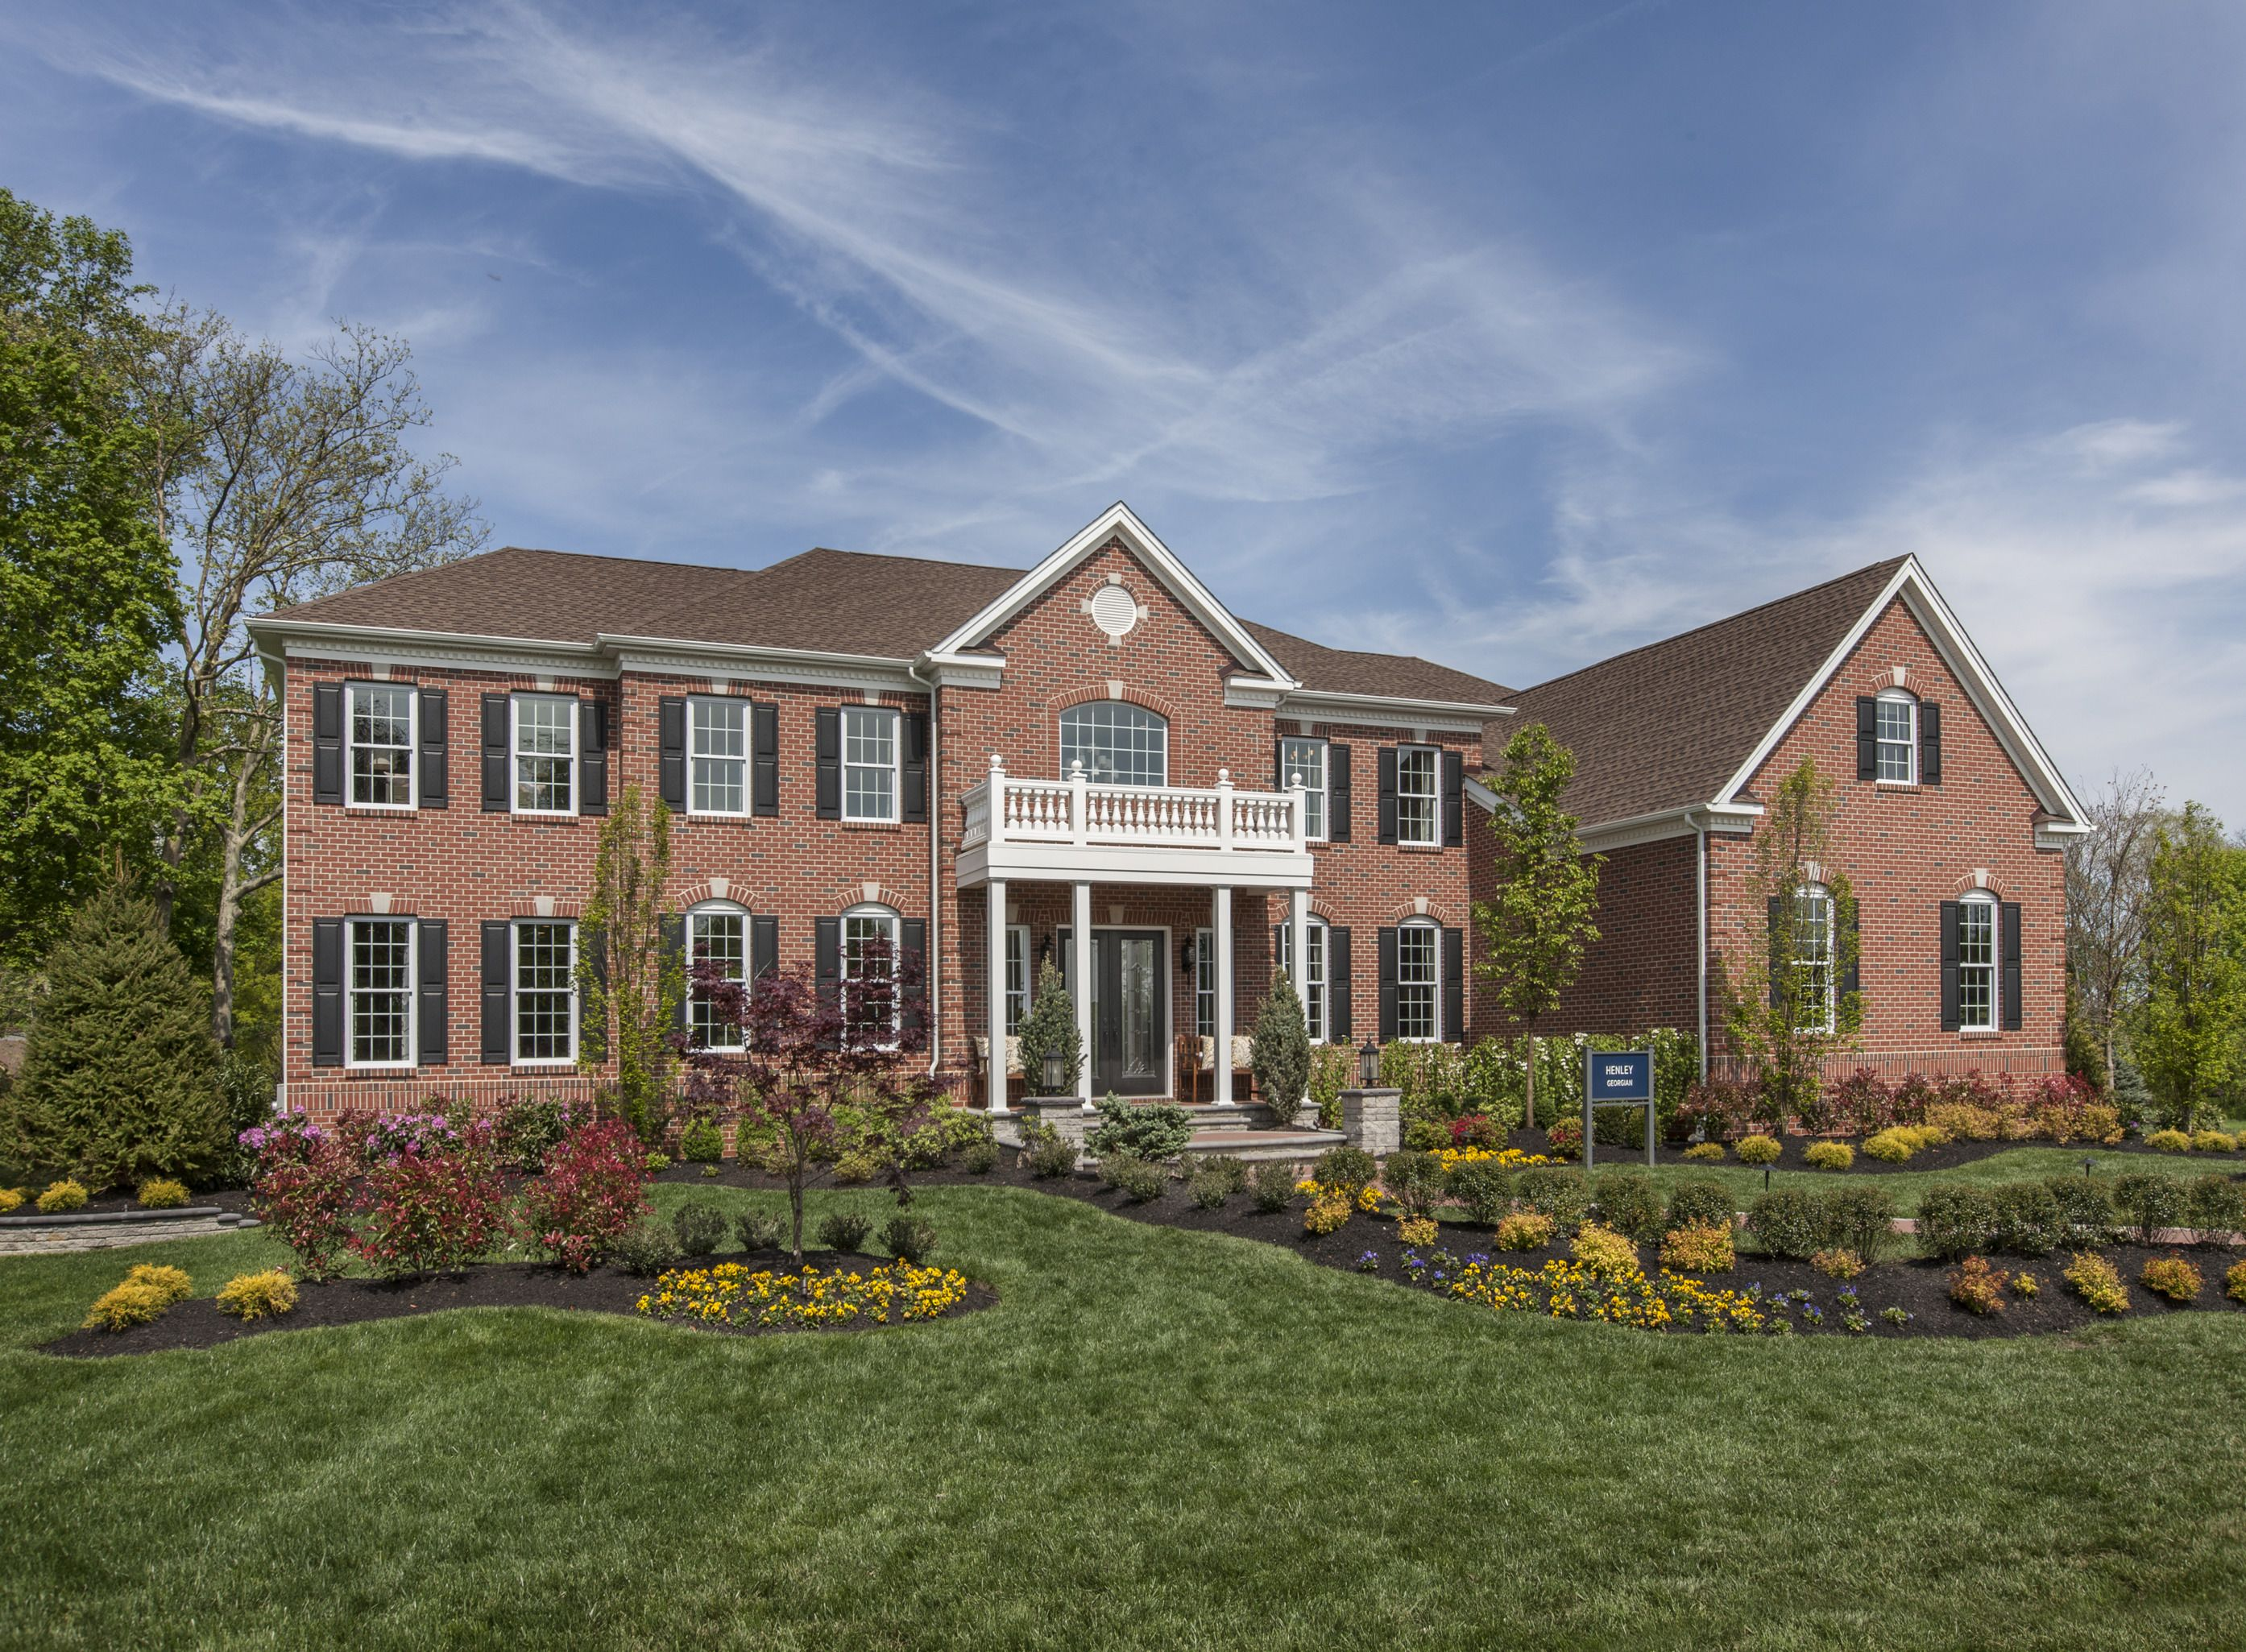 Estates At Bamm Hollow In Lincroft N J New Homes For Sale New Home Designs Home